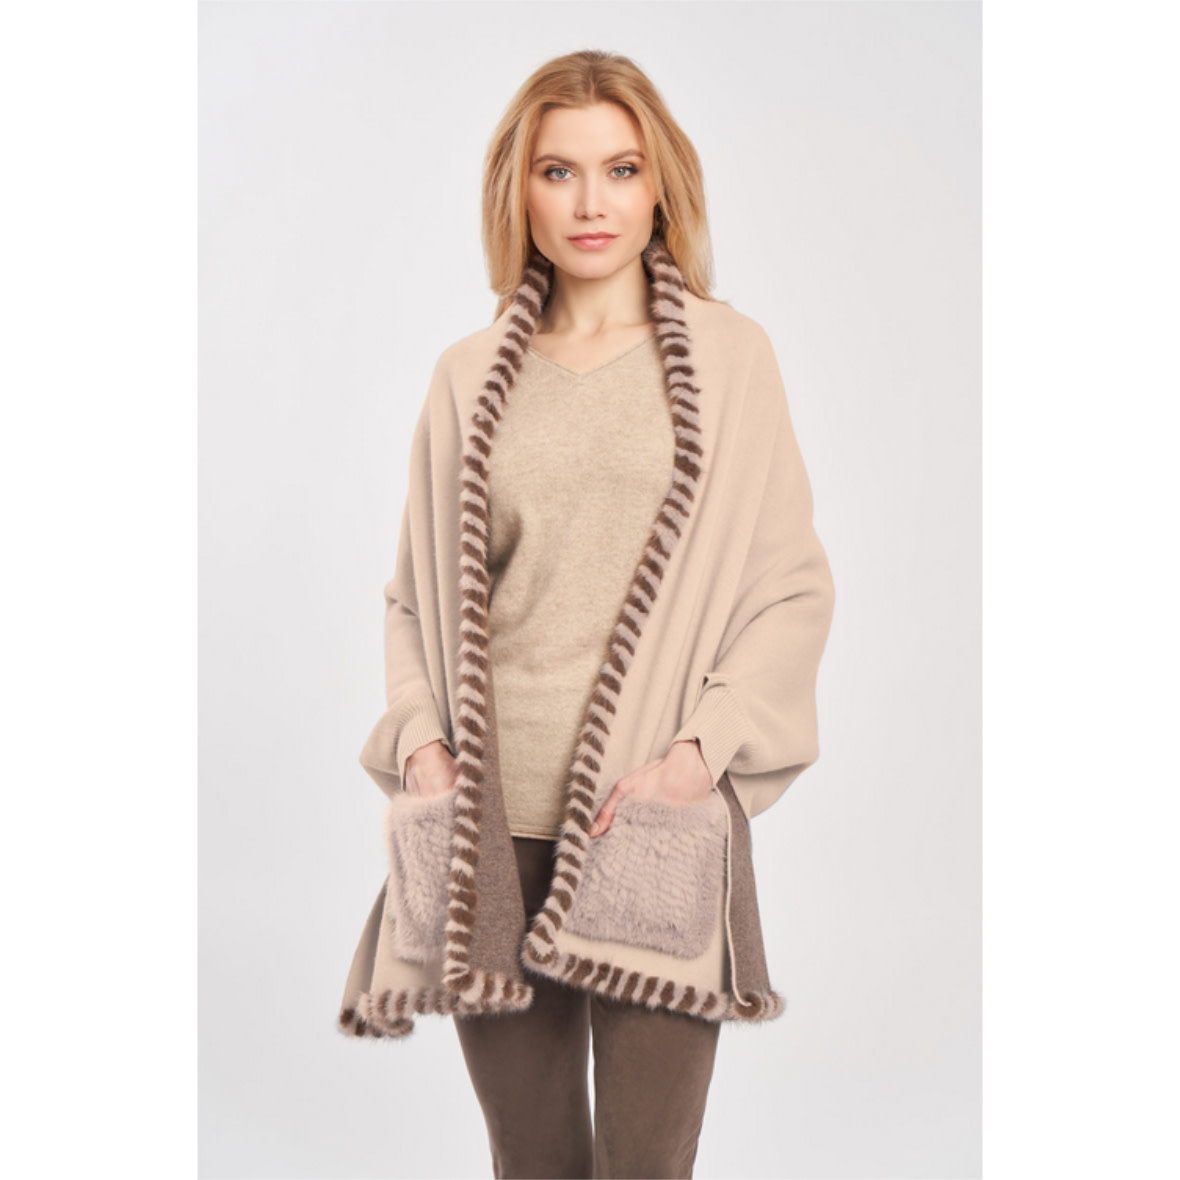 Diomi Diomi Woven Wrap w/ Cuffs and Mink Pockets